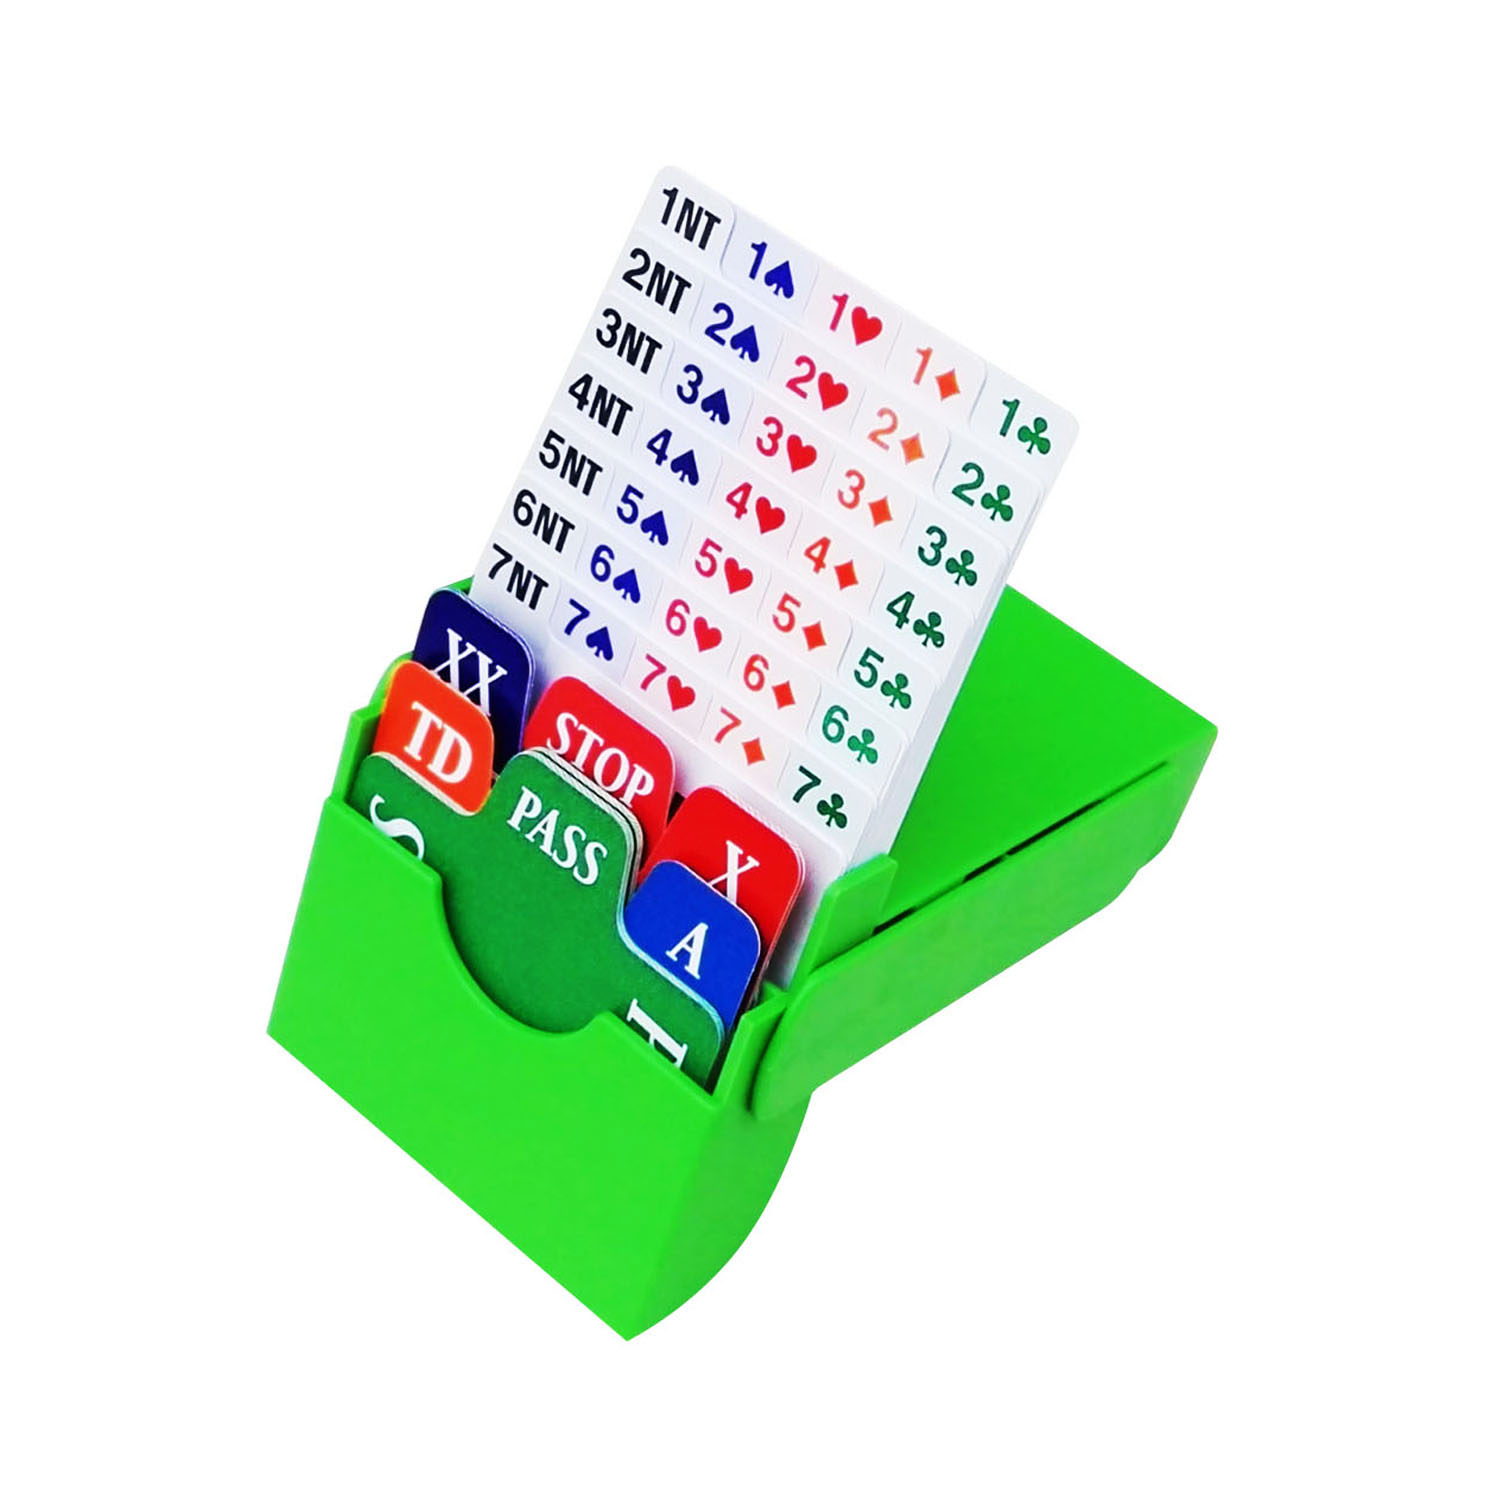 STBG010 Bidding Box(set of 4,Green,incl 100% plastic bidding cards),free shipping